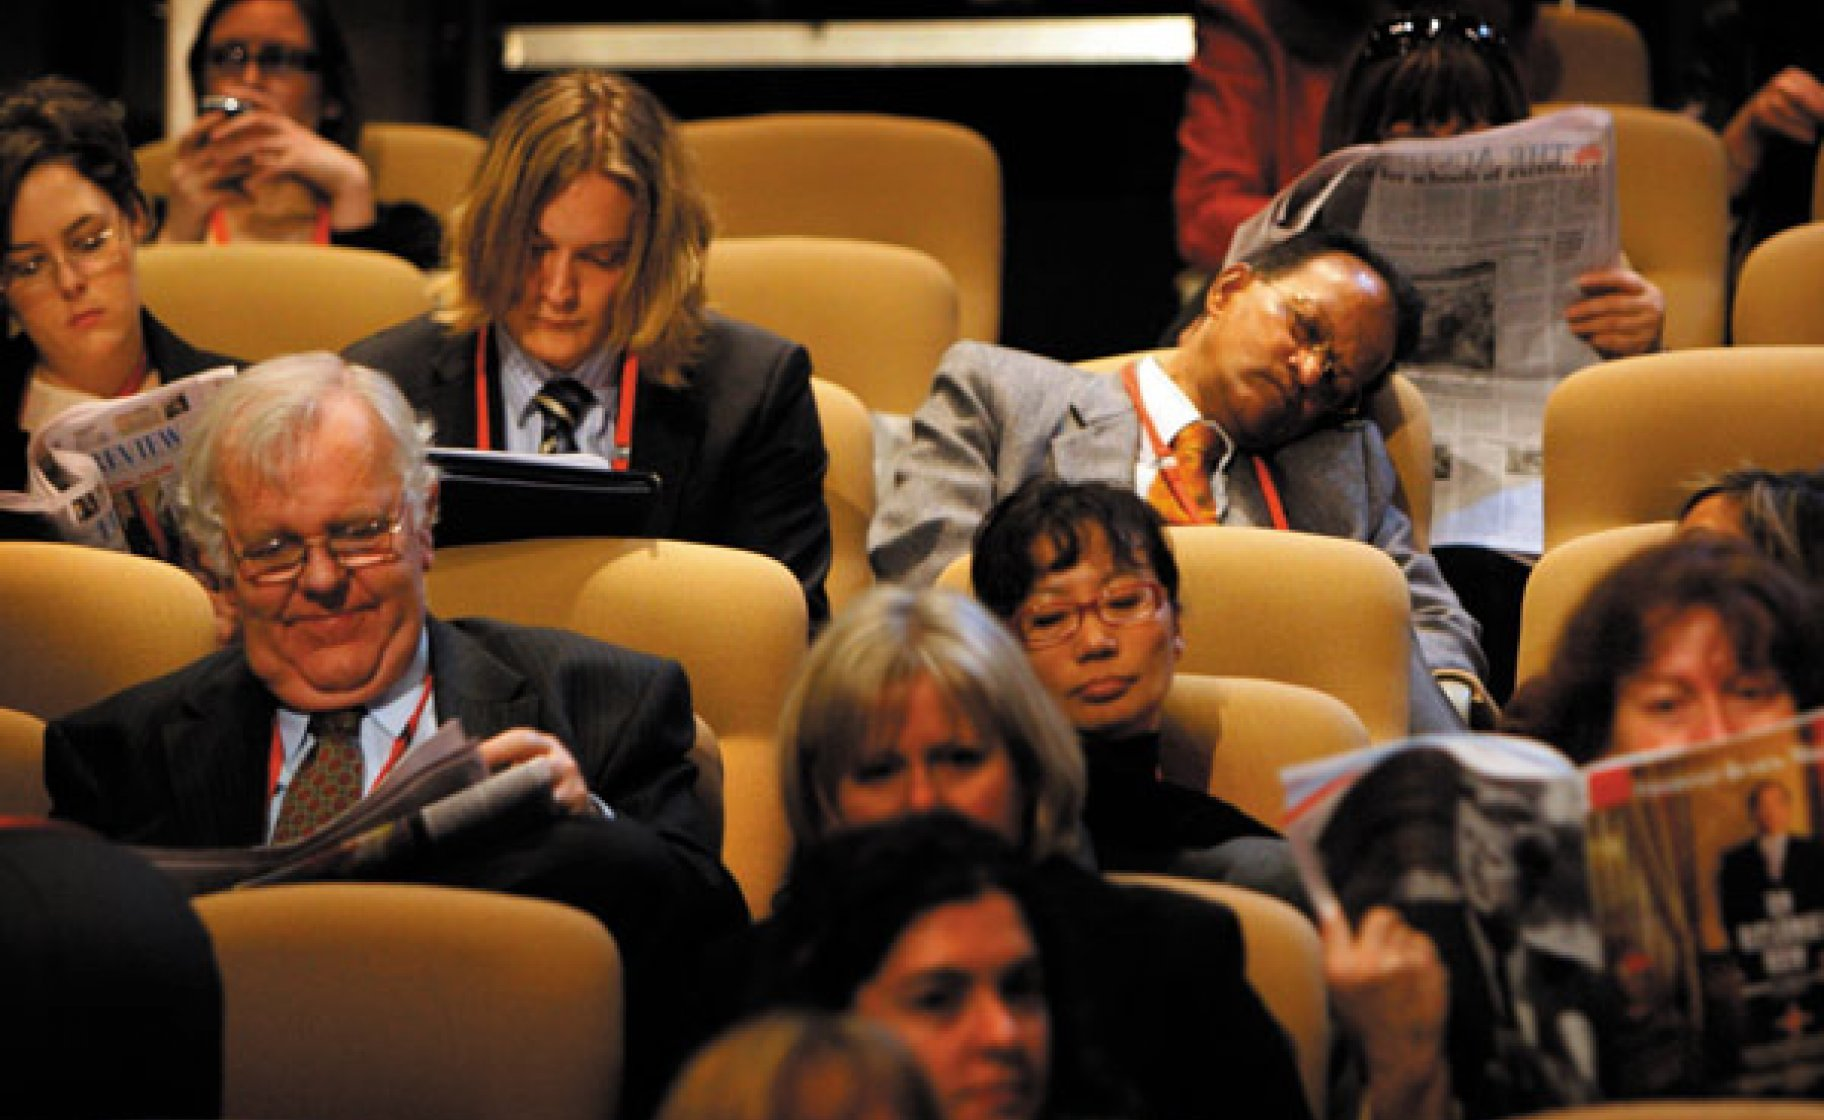 Delegates pause for reflection at the ALP National Conference, 2009. © Andrew Meares/Fairfax Syndication